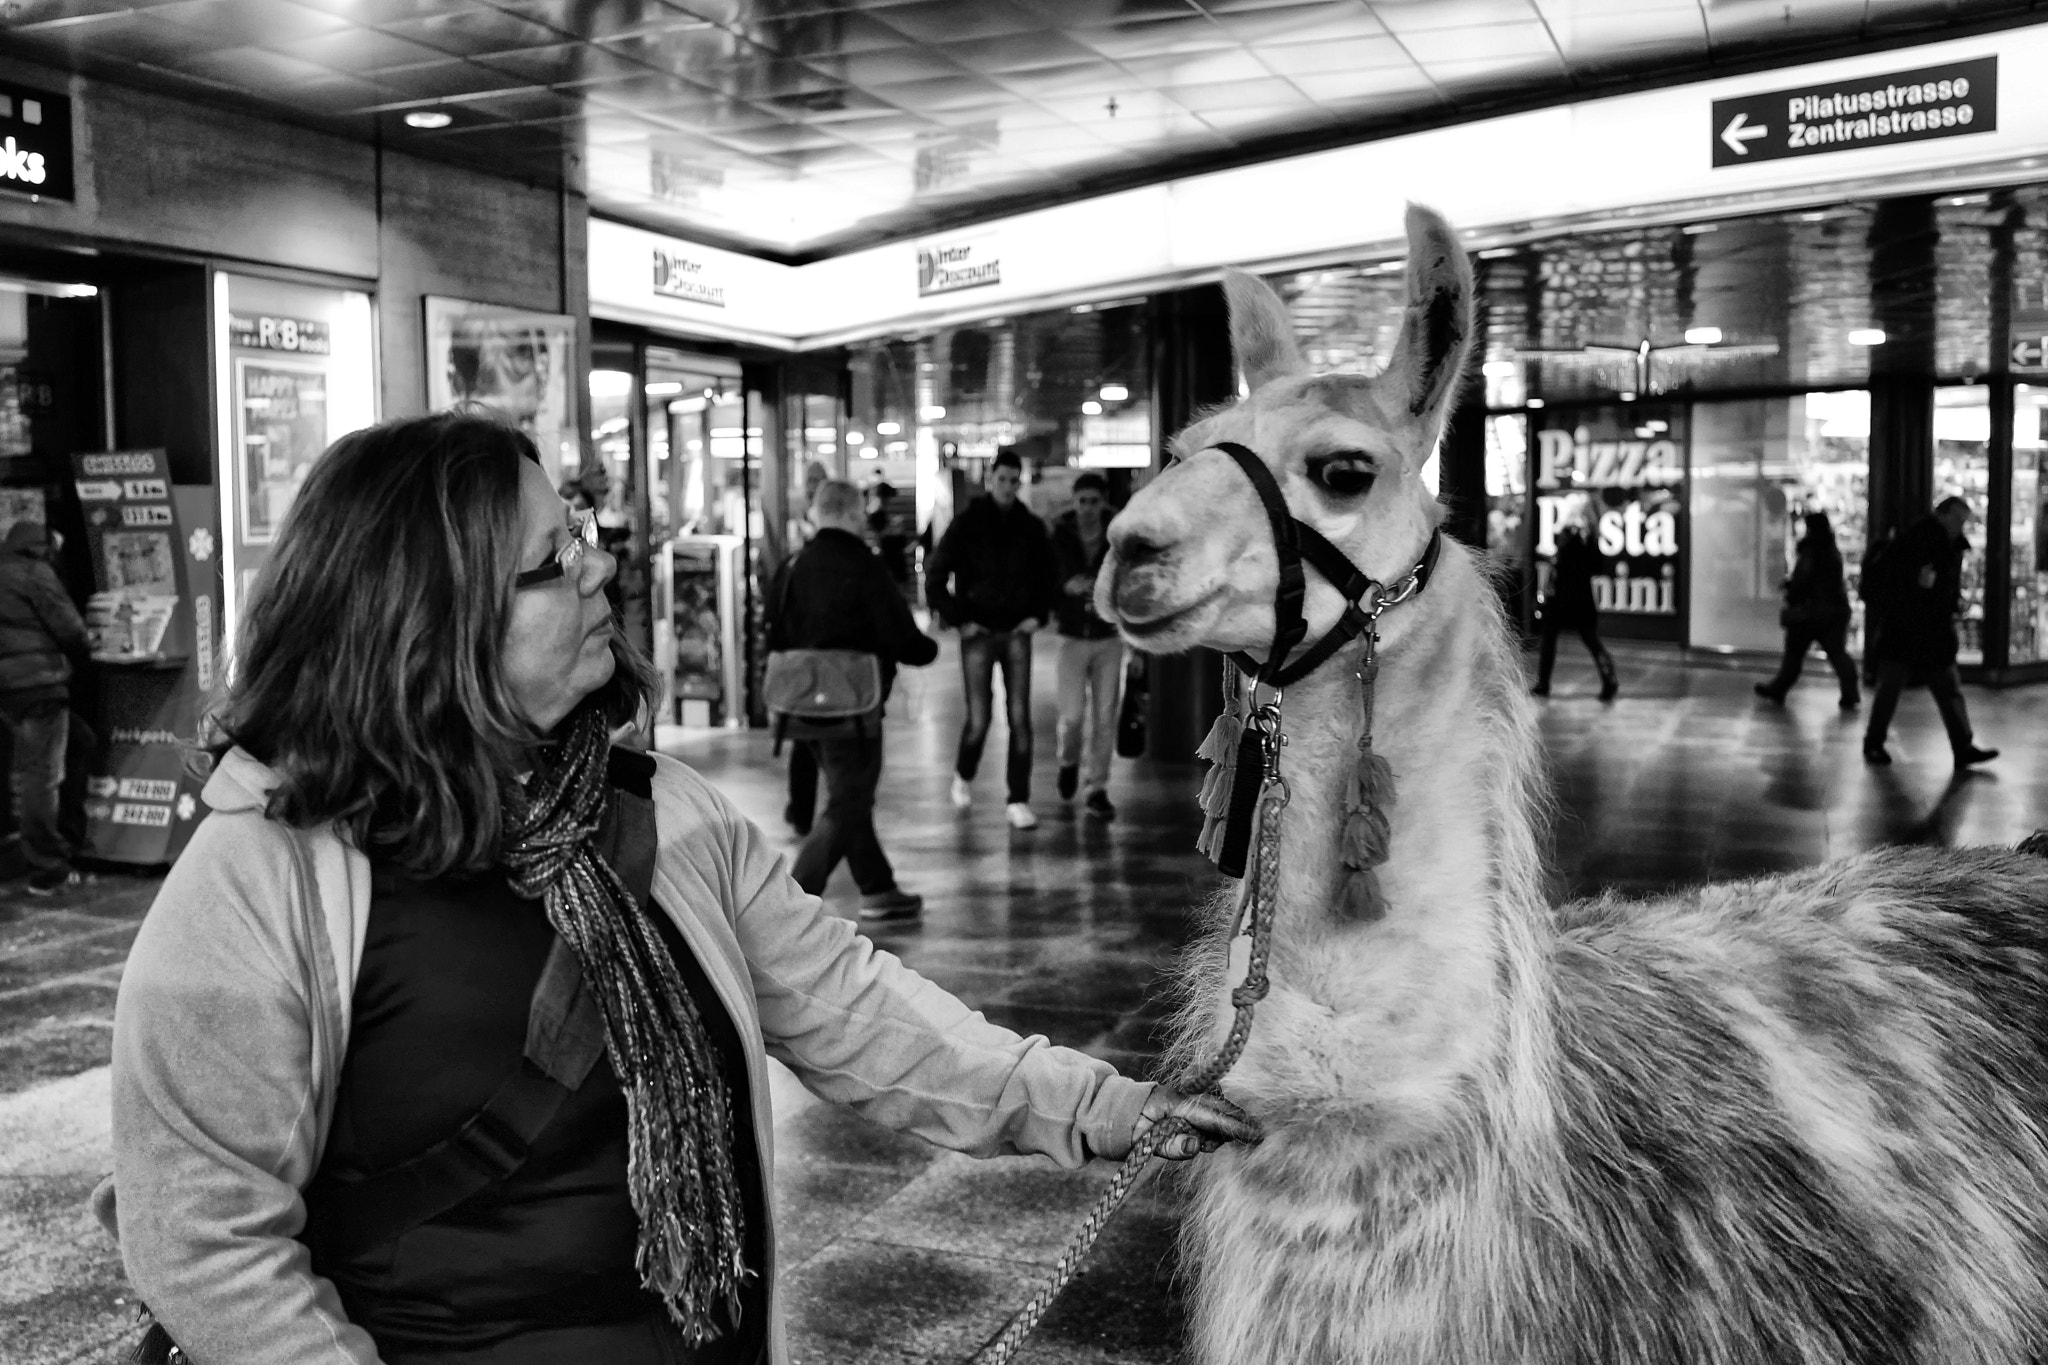 Photograph quickly shot - Llama at the station by Alexander Ess on 500px